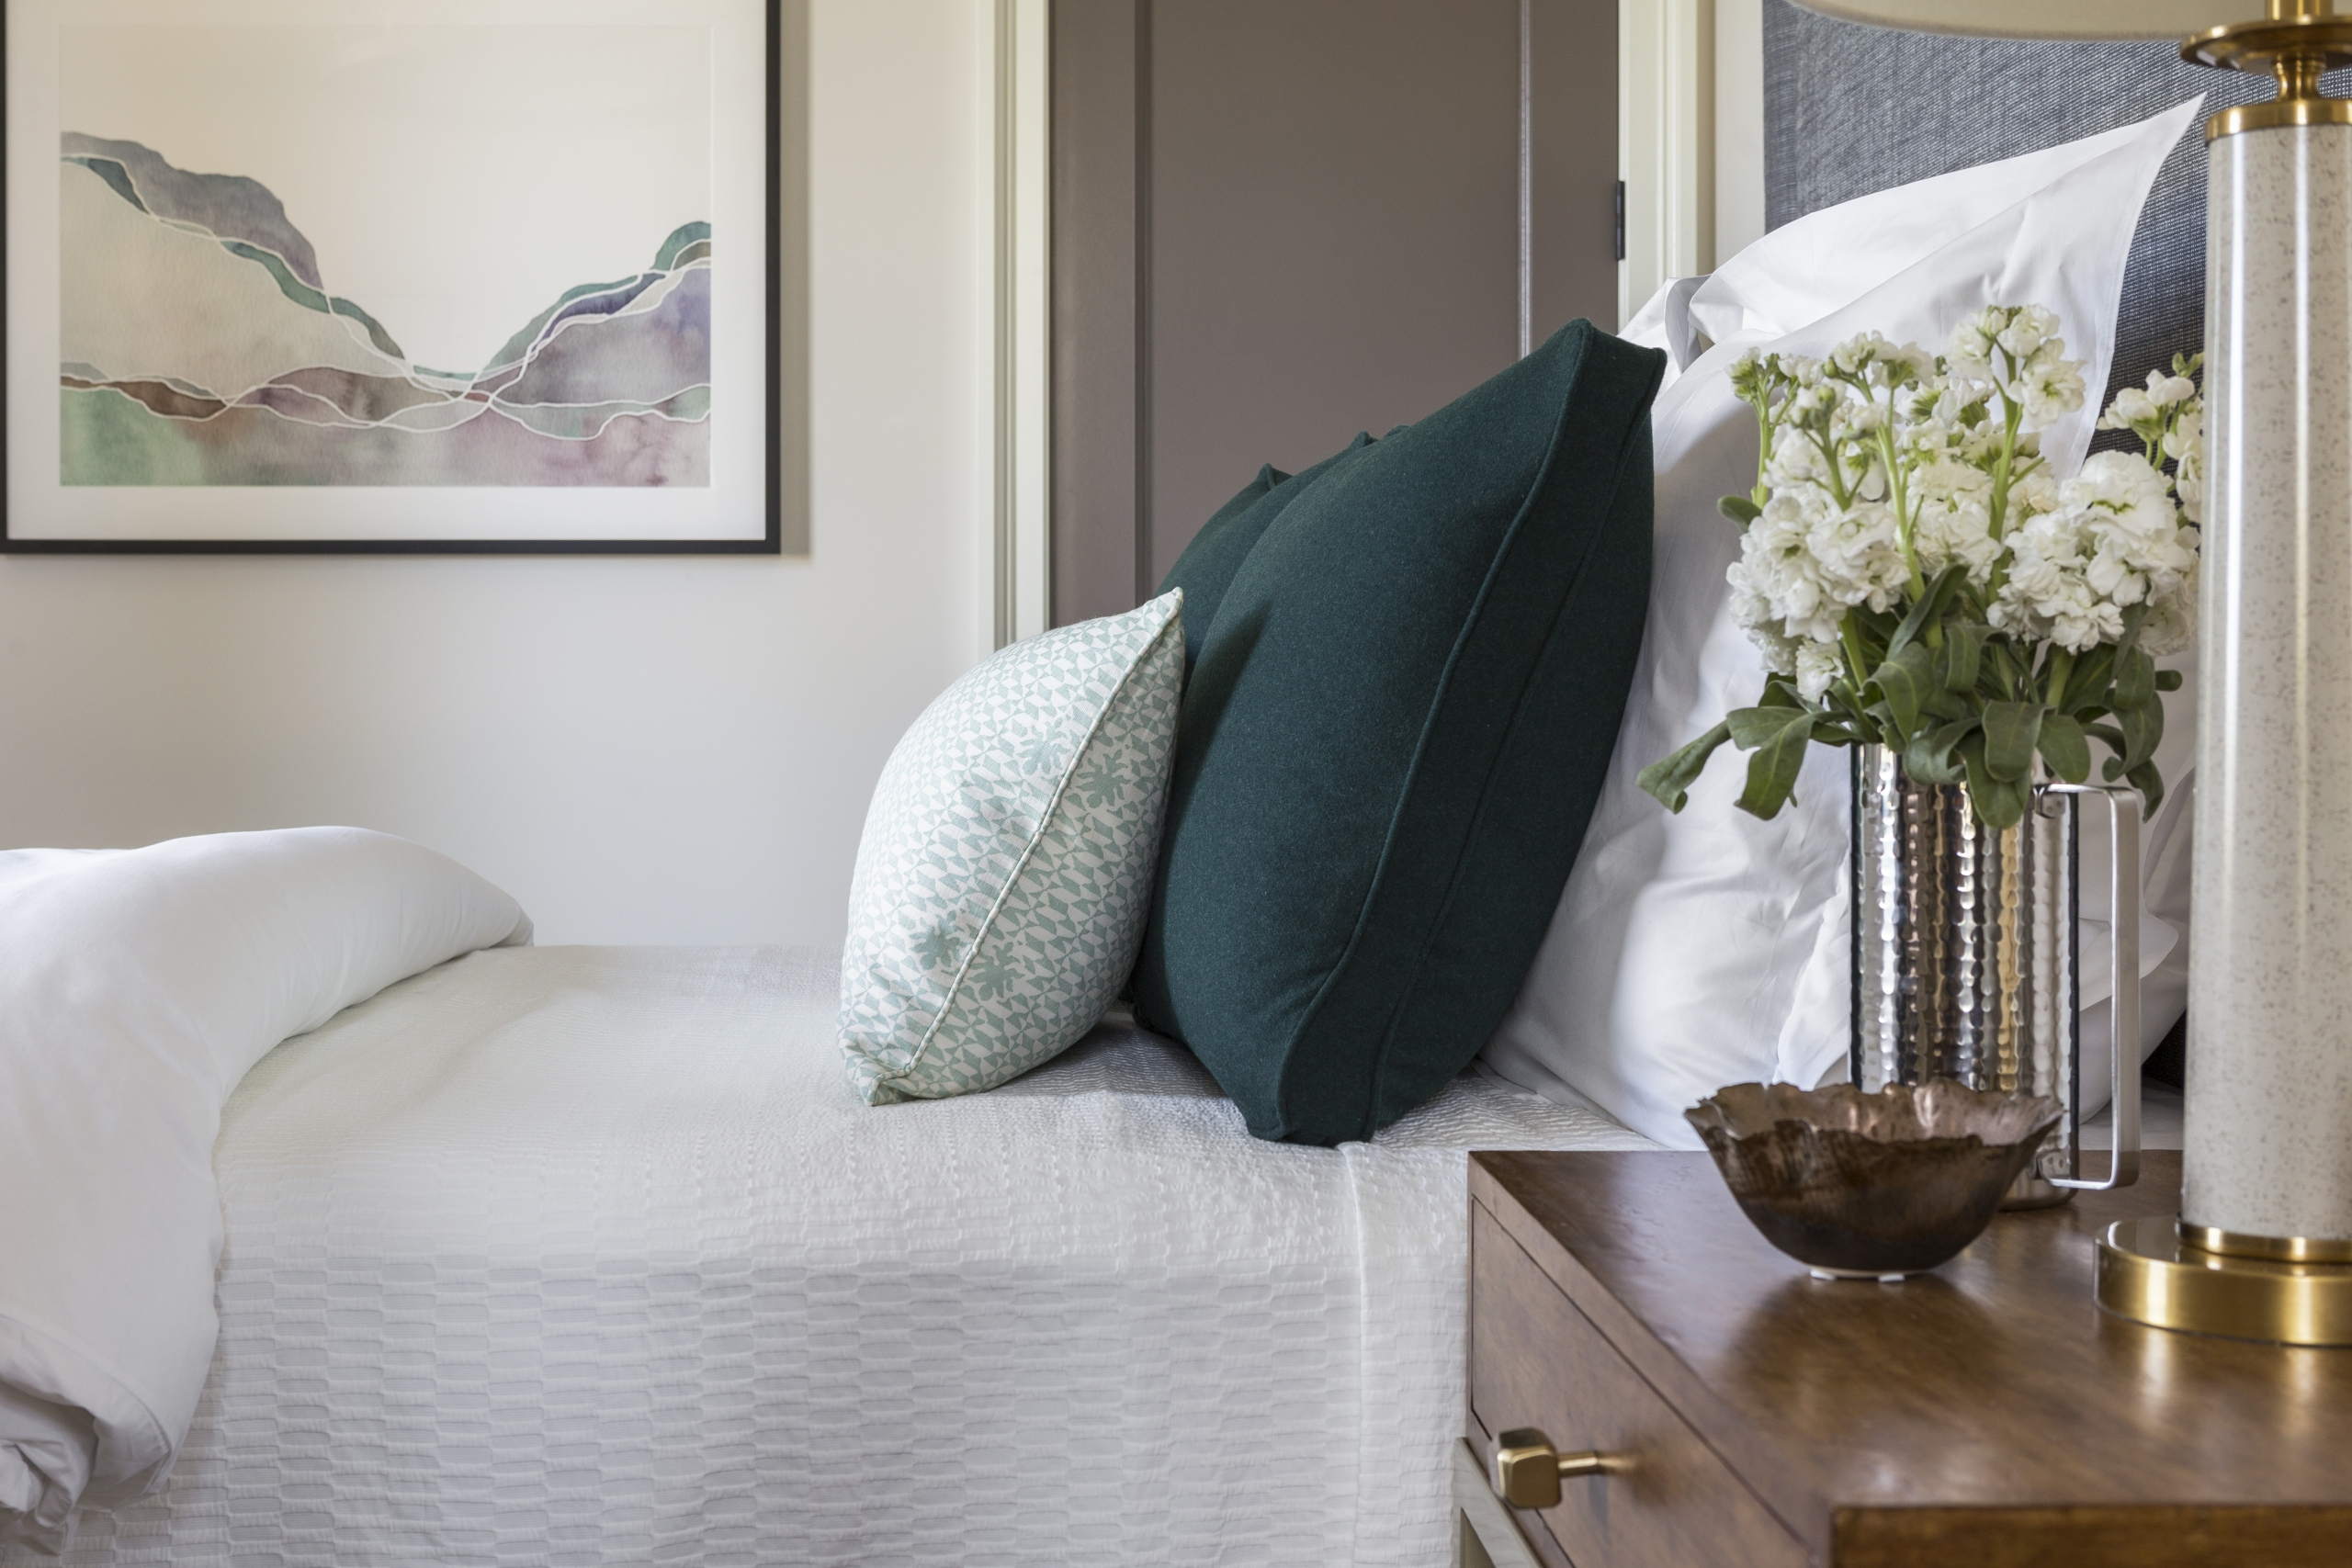 custom headboard with green pillows designed by Sarah Lawson